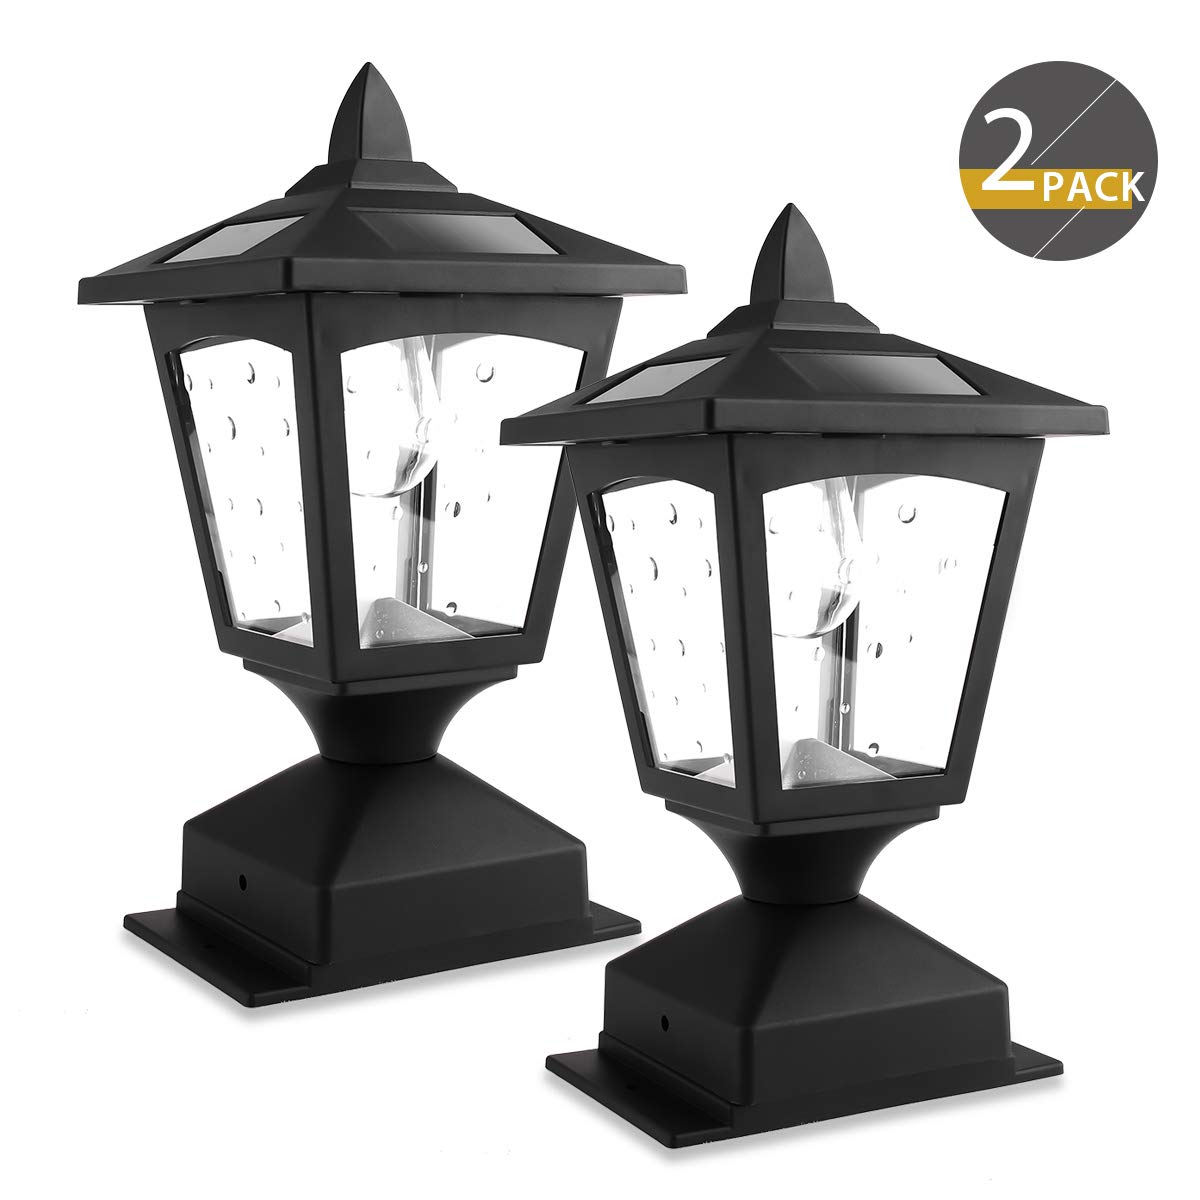 Solar Post Lights Outdoor, Solar Lamp Post Cap Lights for Wood Fence Posts Pathway, Deck, Pack of 2 by Greluna